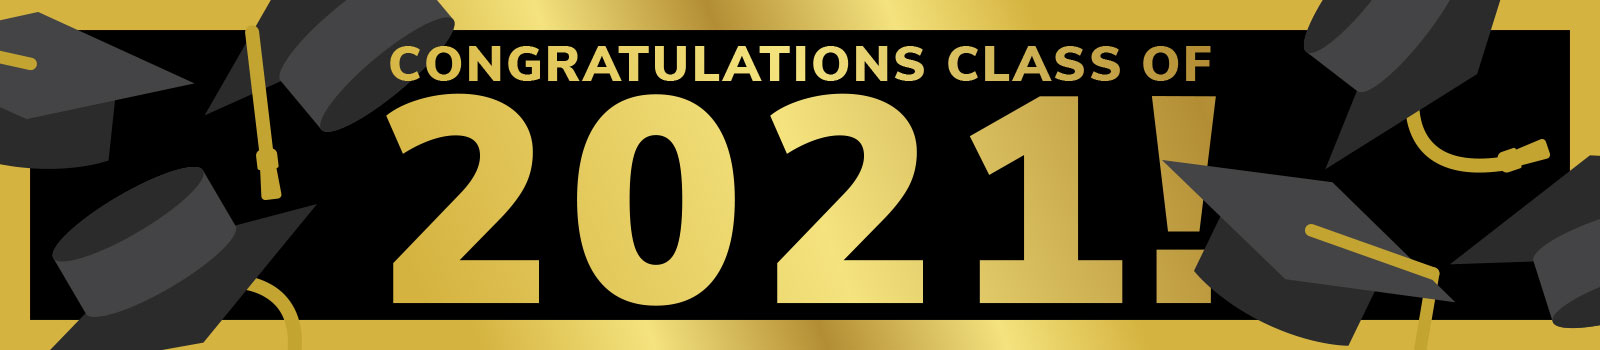 Congratulations to the Class of 2021